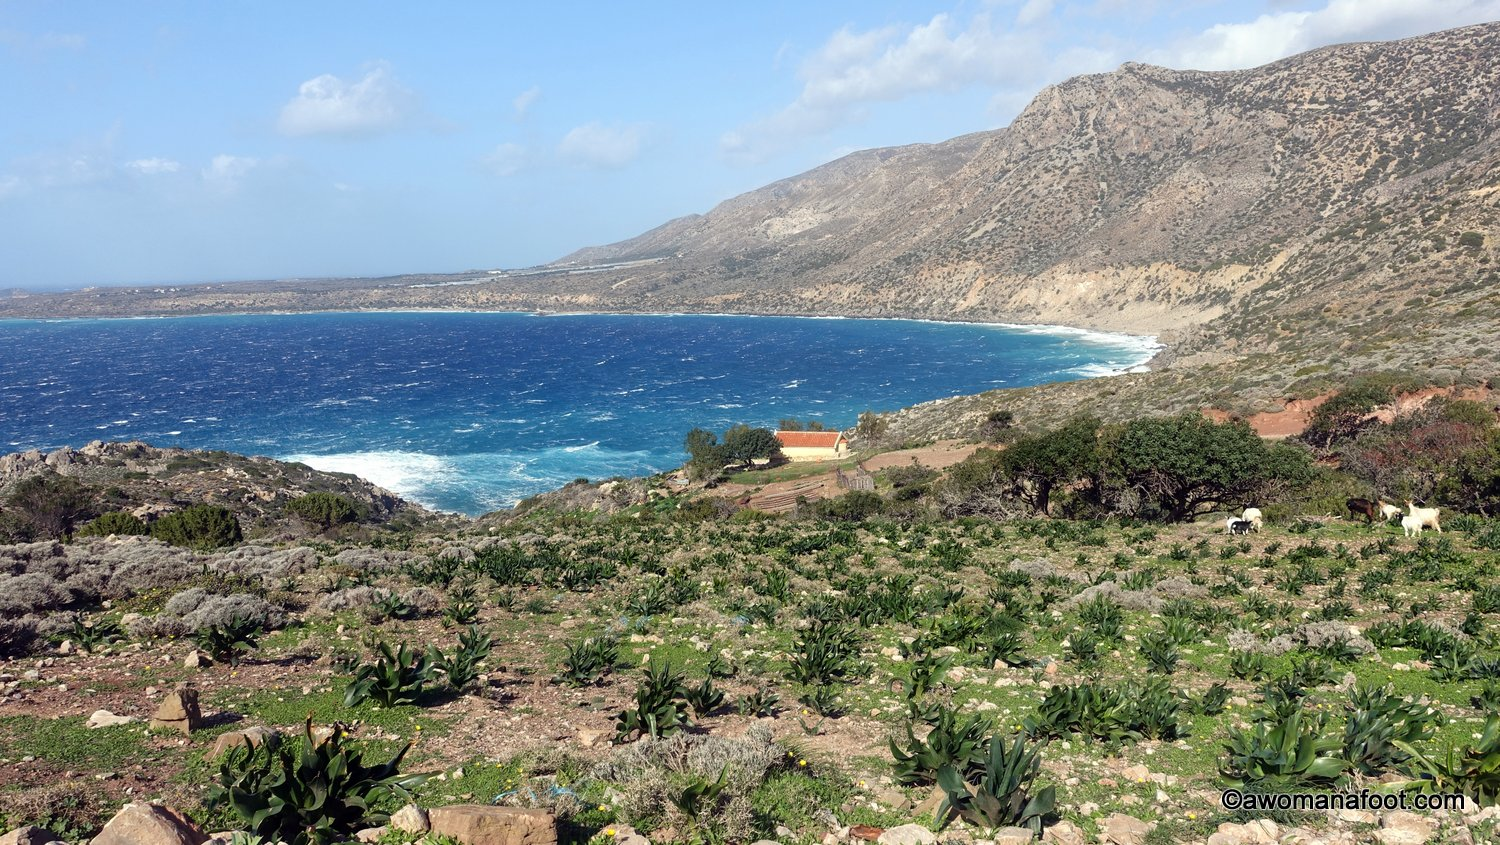 Dramatic views, running goats, predawn Elafonissi beach and countless rocks - my solo trek through Crete continues! Check days 3-5 along the E4 trail (and off it) - from Kampos through Chrissoskalitissis Monastery and Elafonissi Beach to Paleochora. #Crete #Greece #hiking #E4trail | Hiking trails in Europe | Women Hiking solo | HIking solo on Crete | Hiking Trails on Crete | Awomanafoot.com